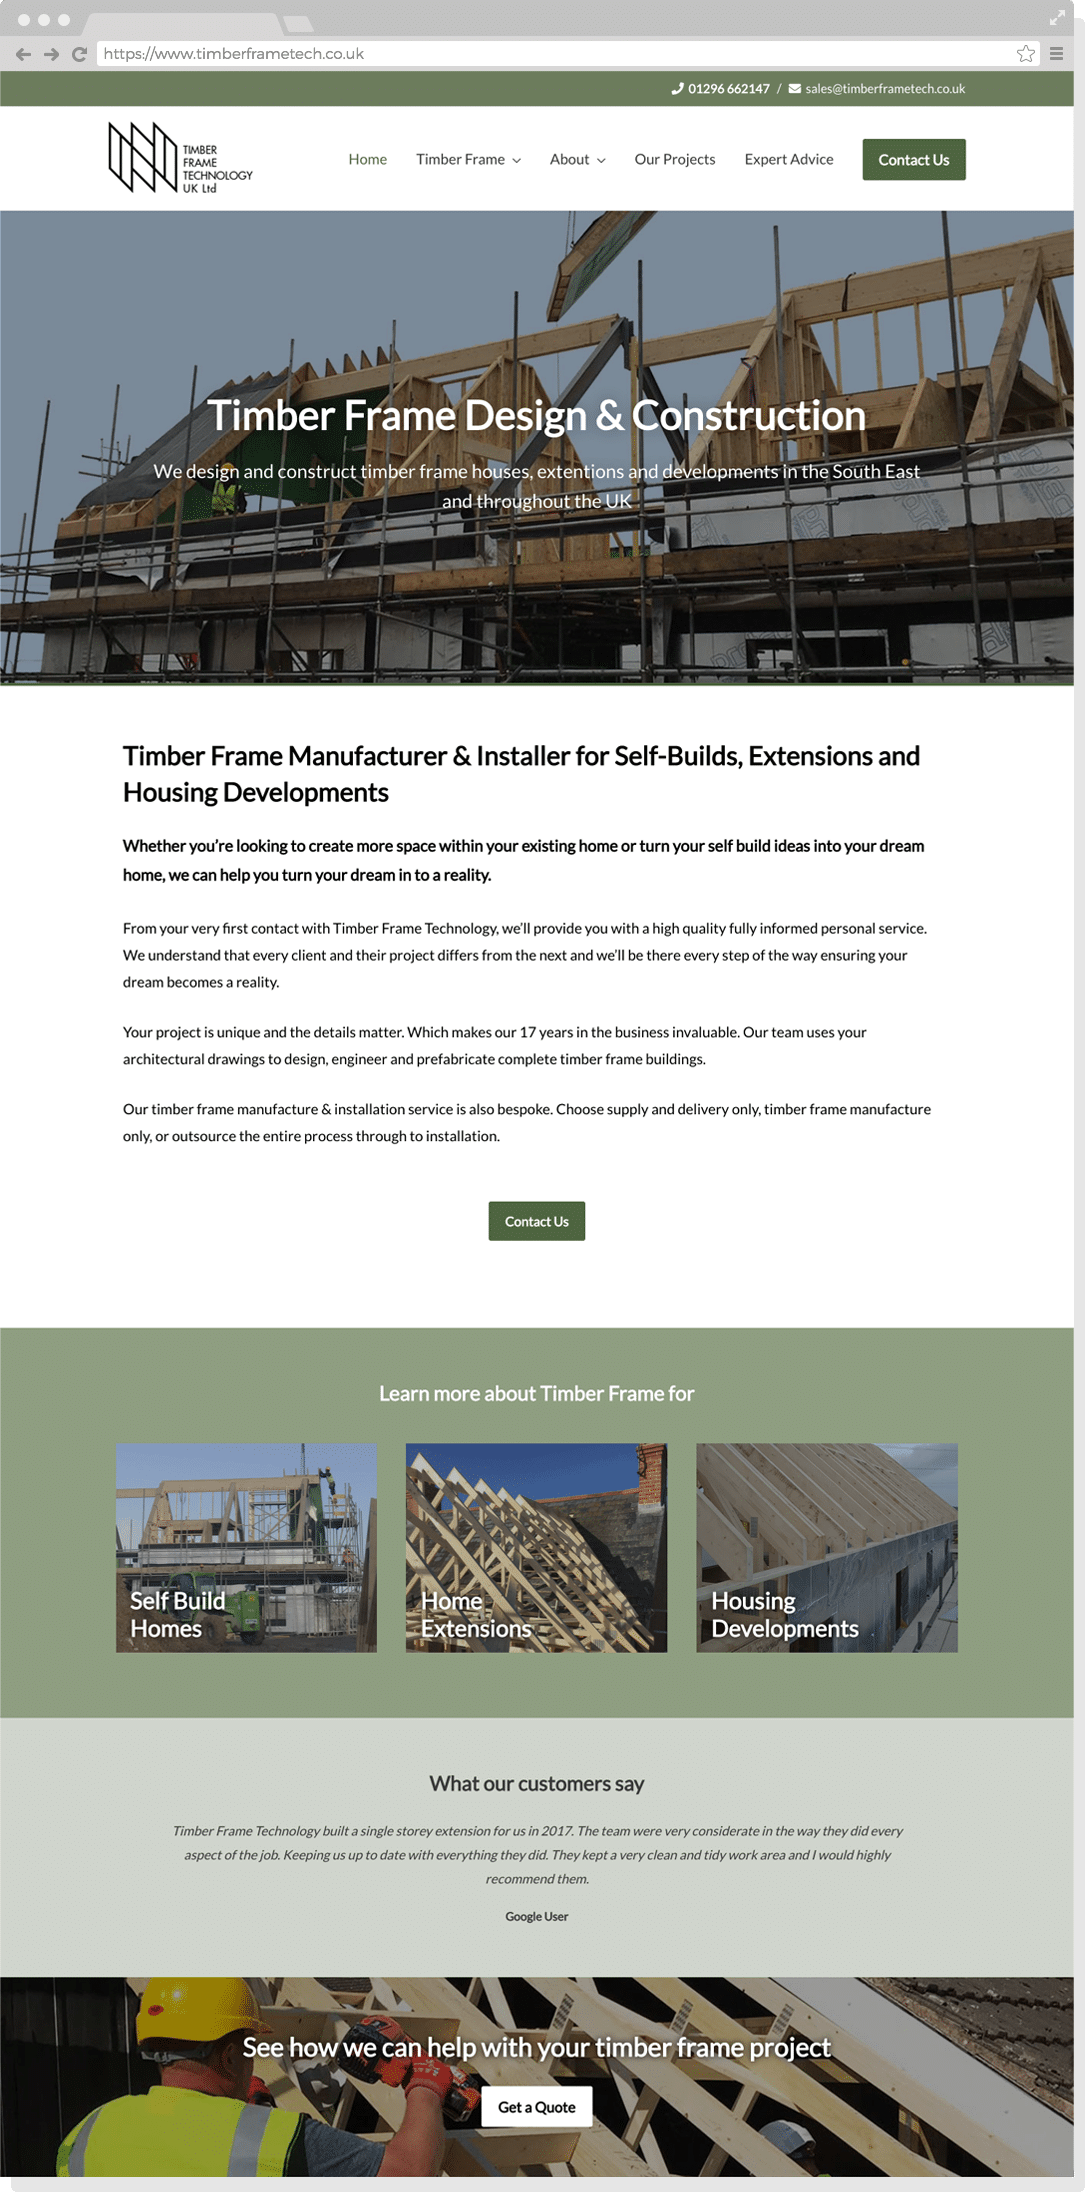 Home page of the Timber Frame Technology Website